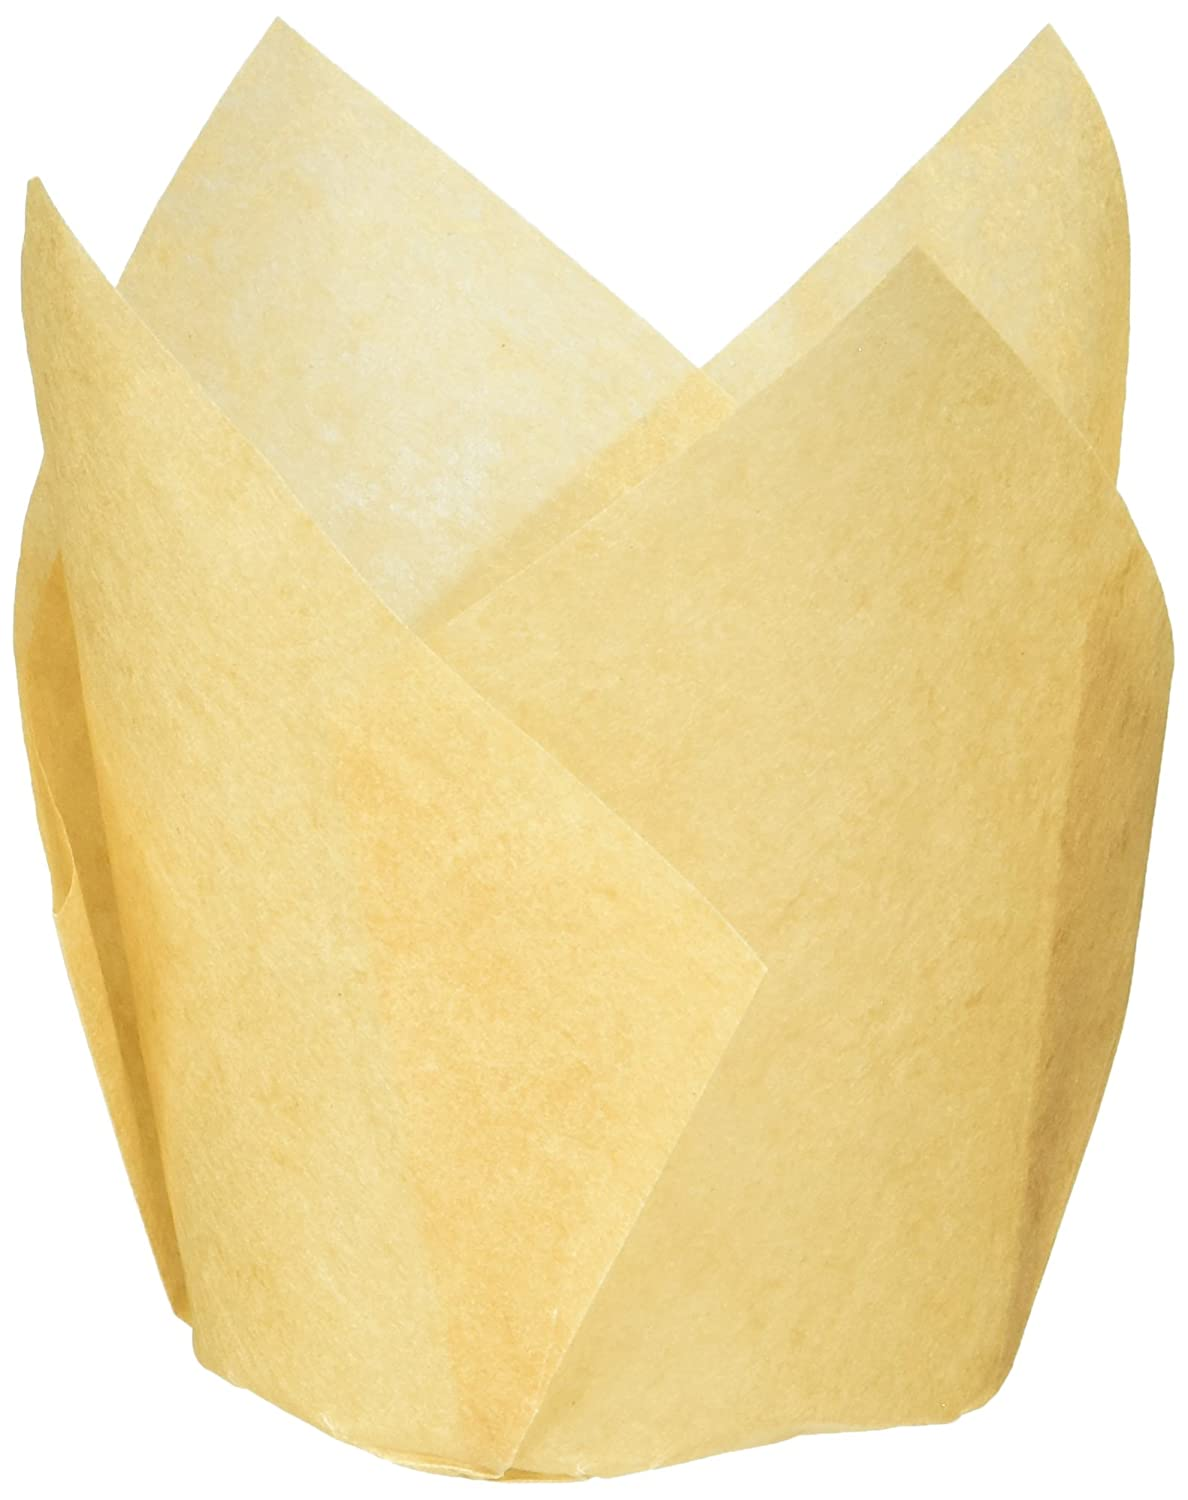 """Hoffmaster 611121 Tulip Cup Cupcake Wrapper/Baking Cup, 2-1/4"""" Diameter x 4"""" Height, Large, Natural (4 Packs of 250)"""